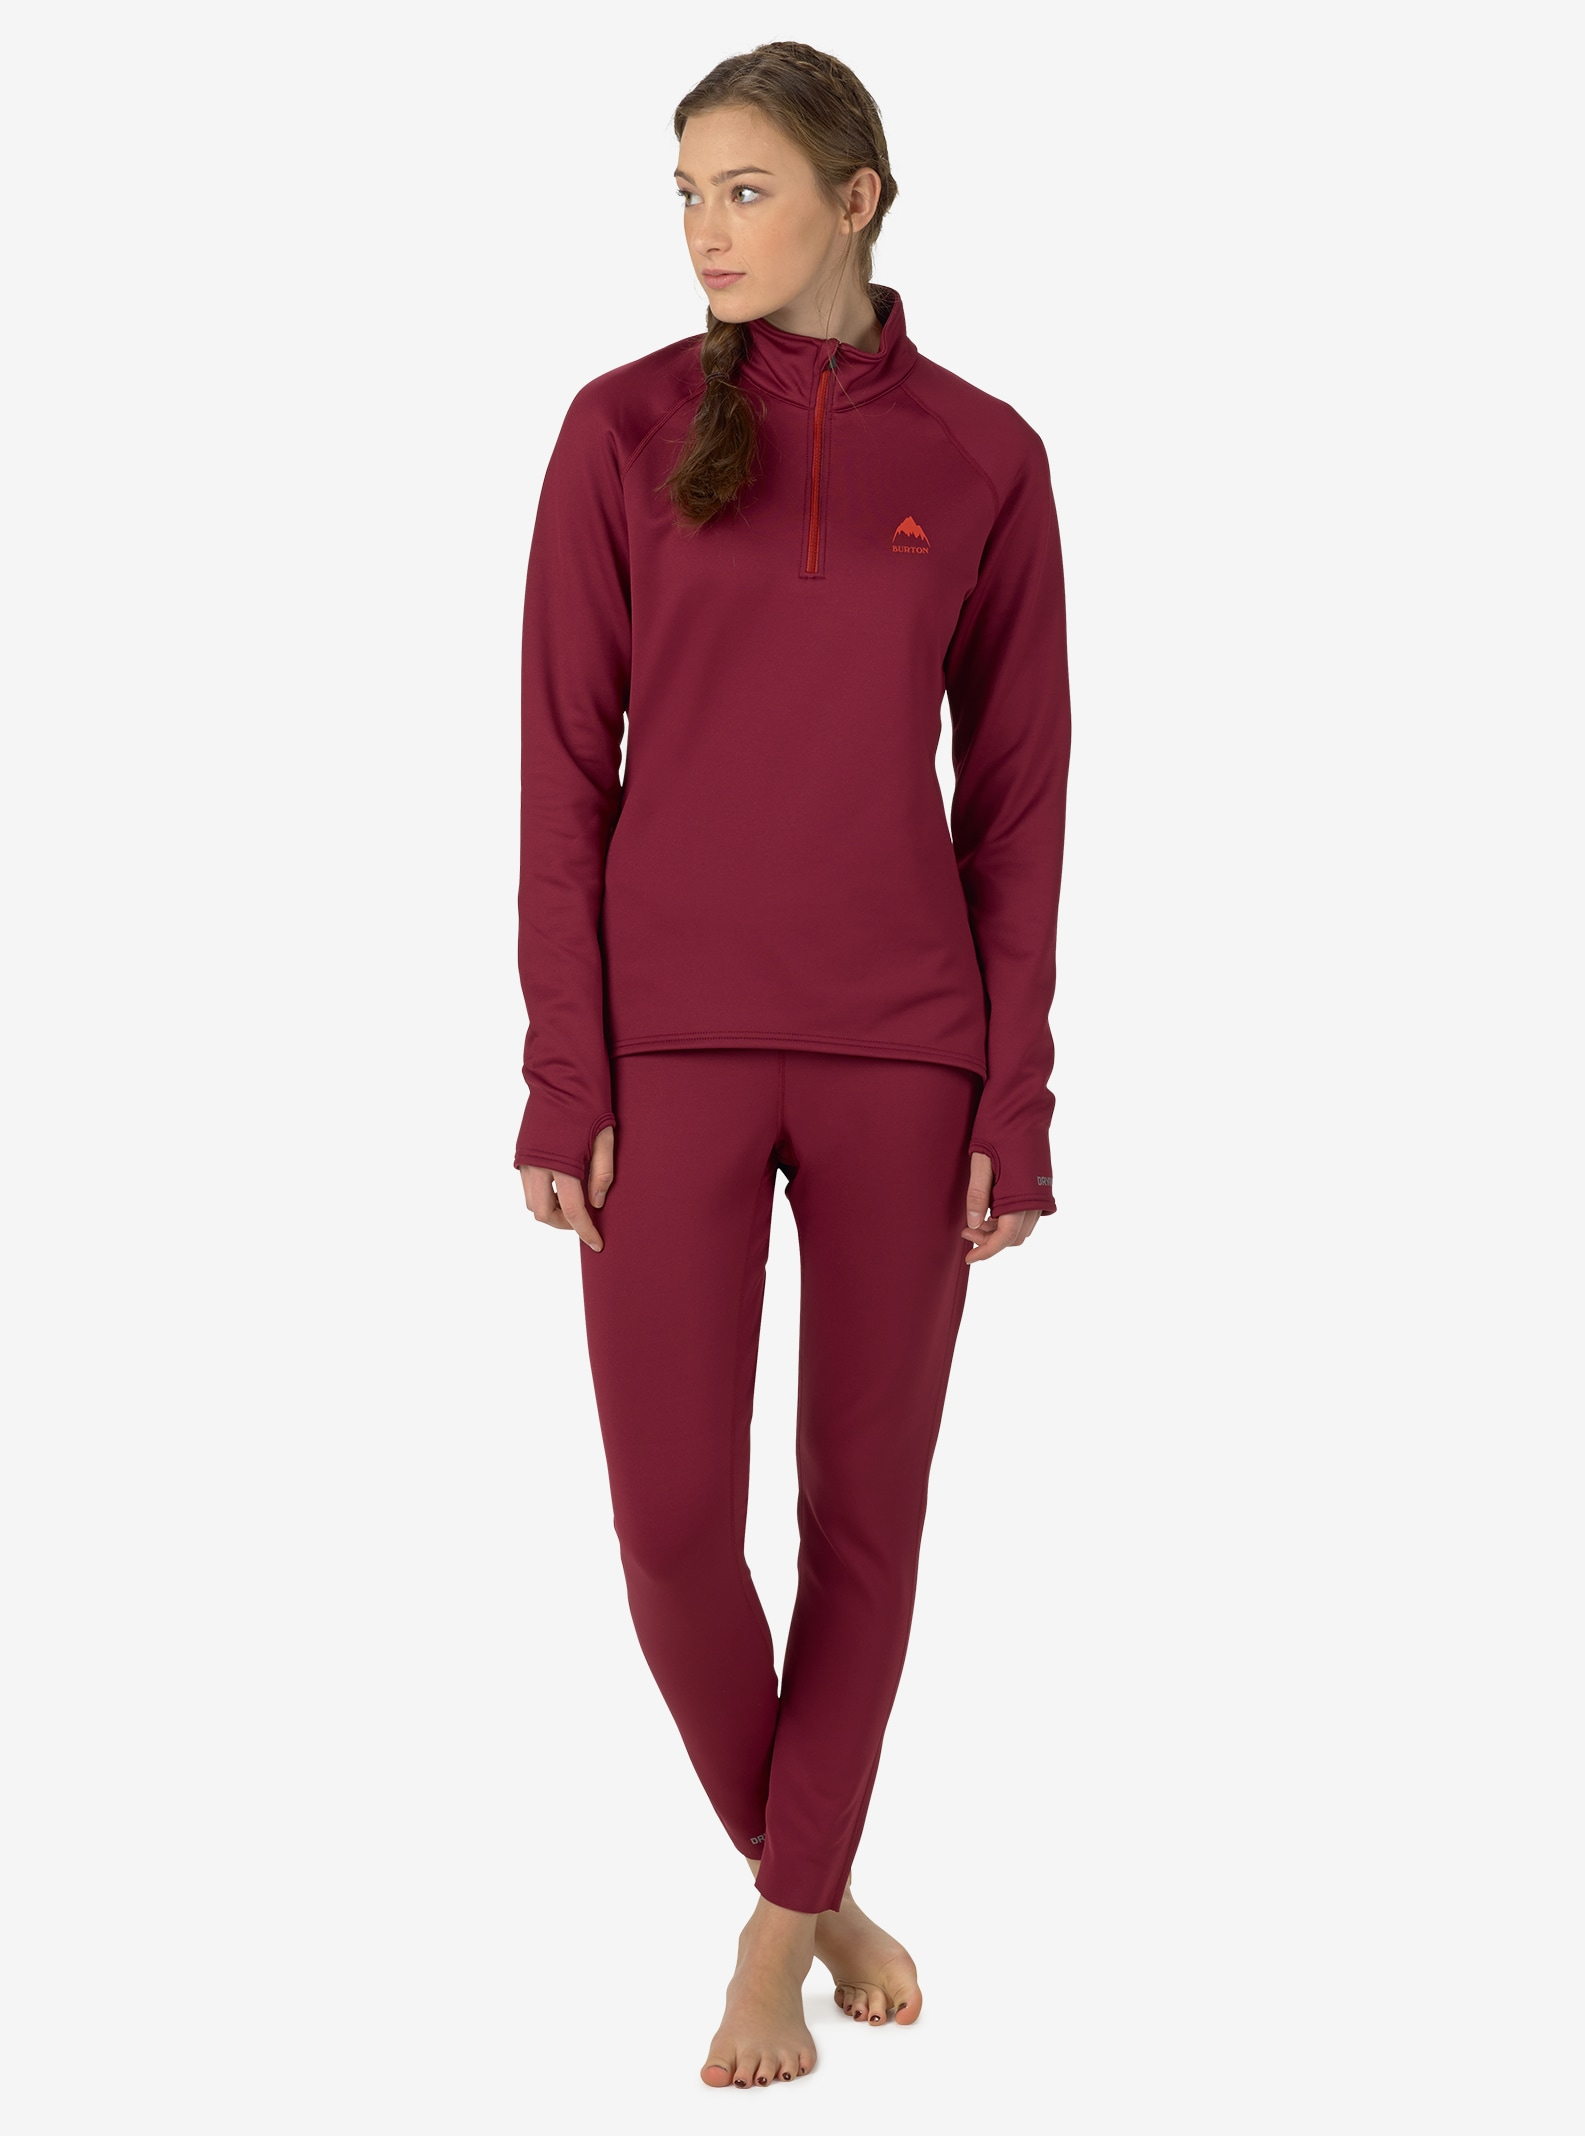 Burton Women's Expedition 1/4 Zip Base Layer shown in Sangria